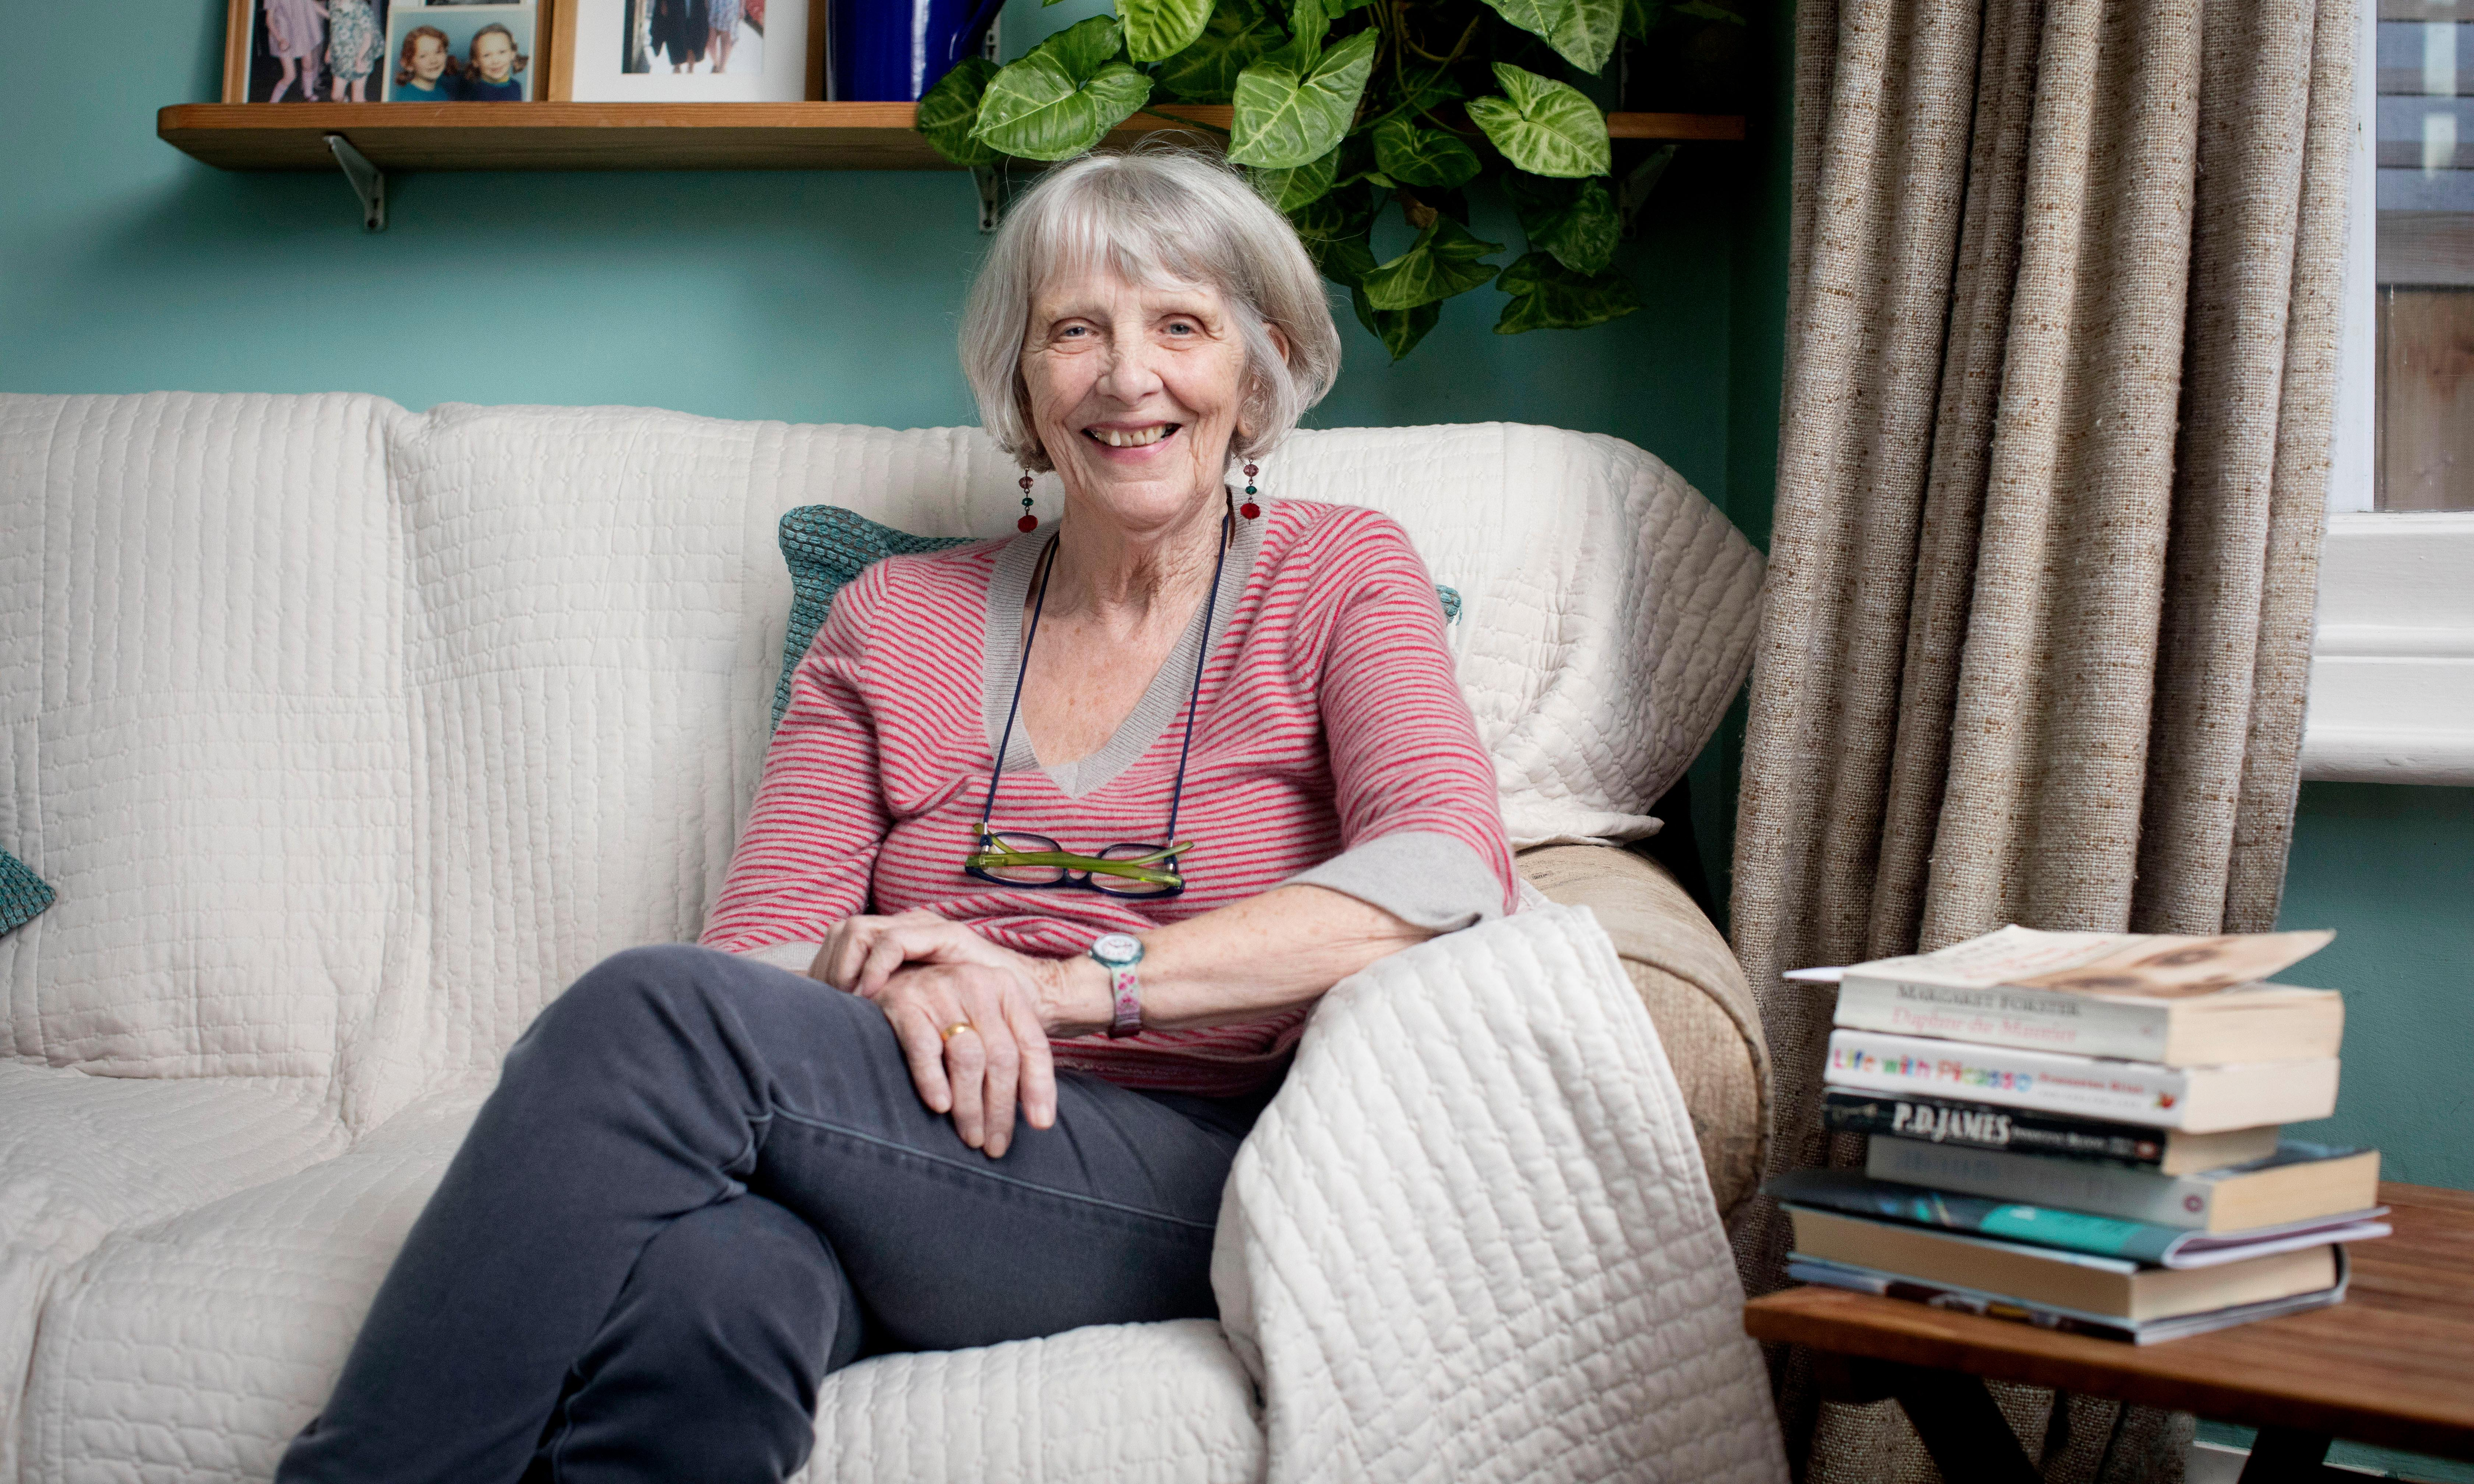 'I'm 78 on an £18,000 income and live a very good life in London'